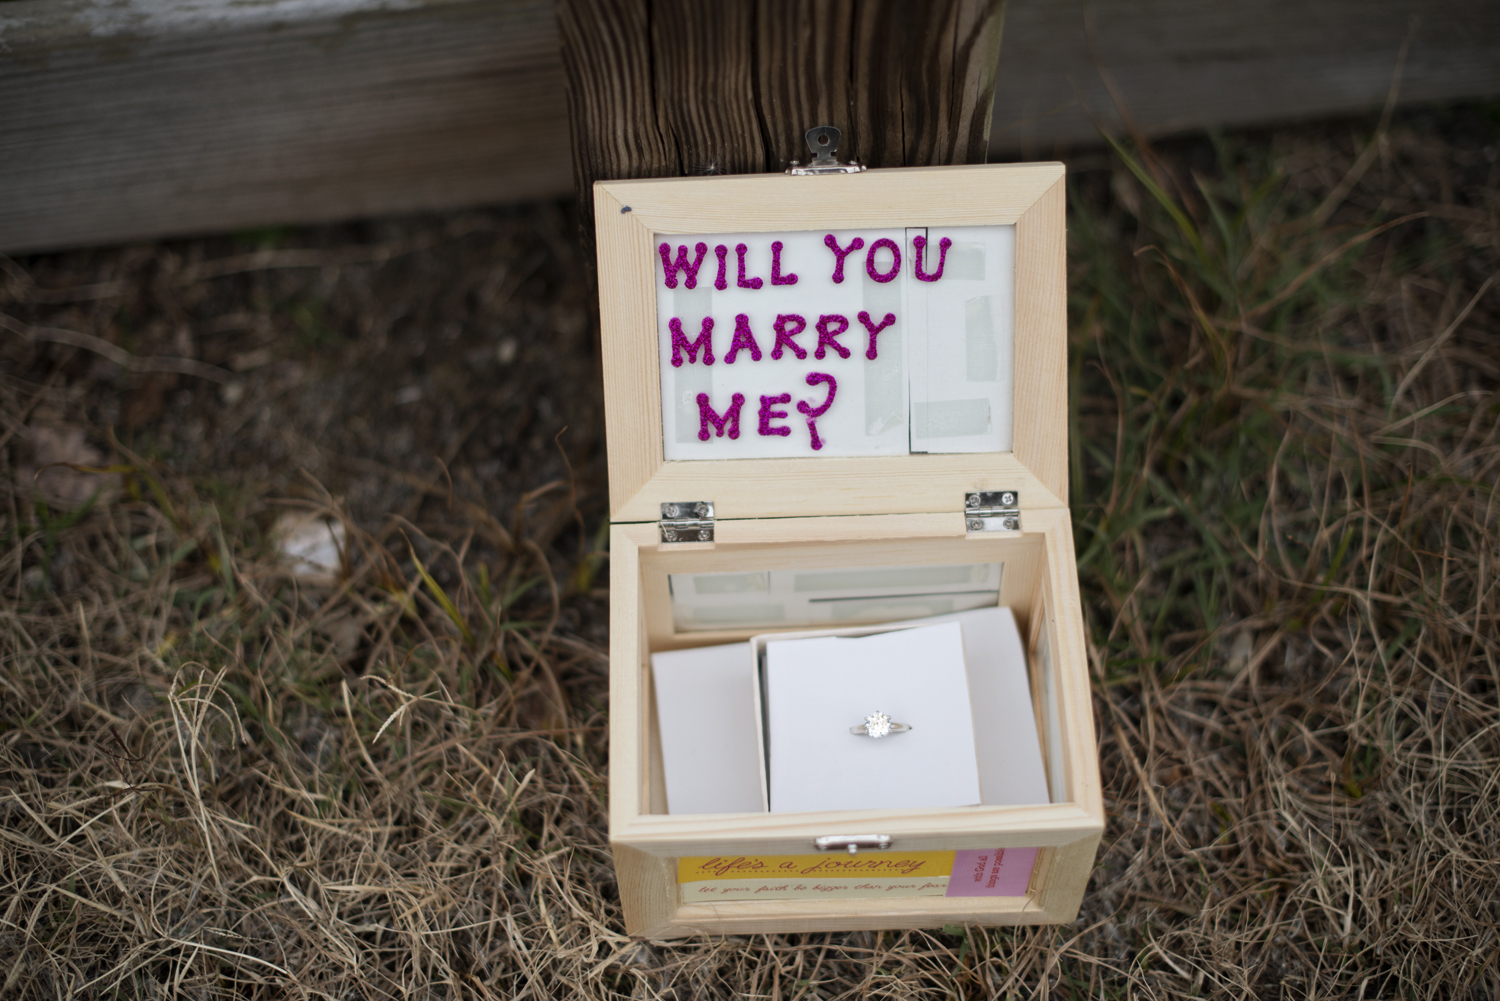 Cute ways to propose - a wooden box with Will You Marry Me